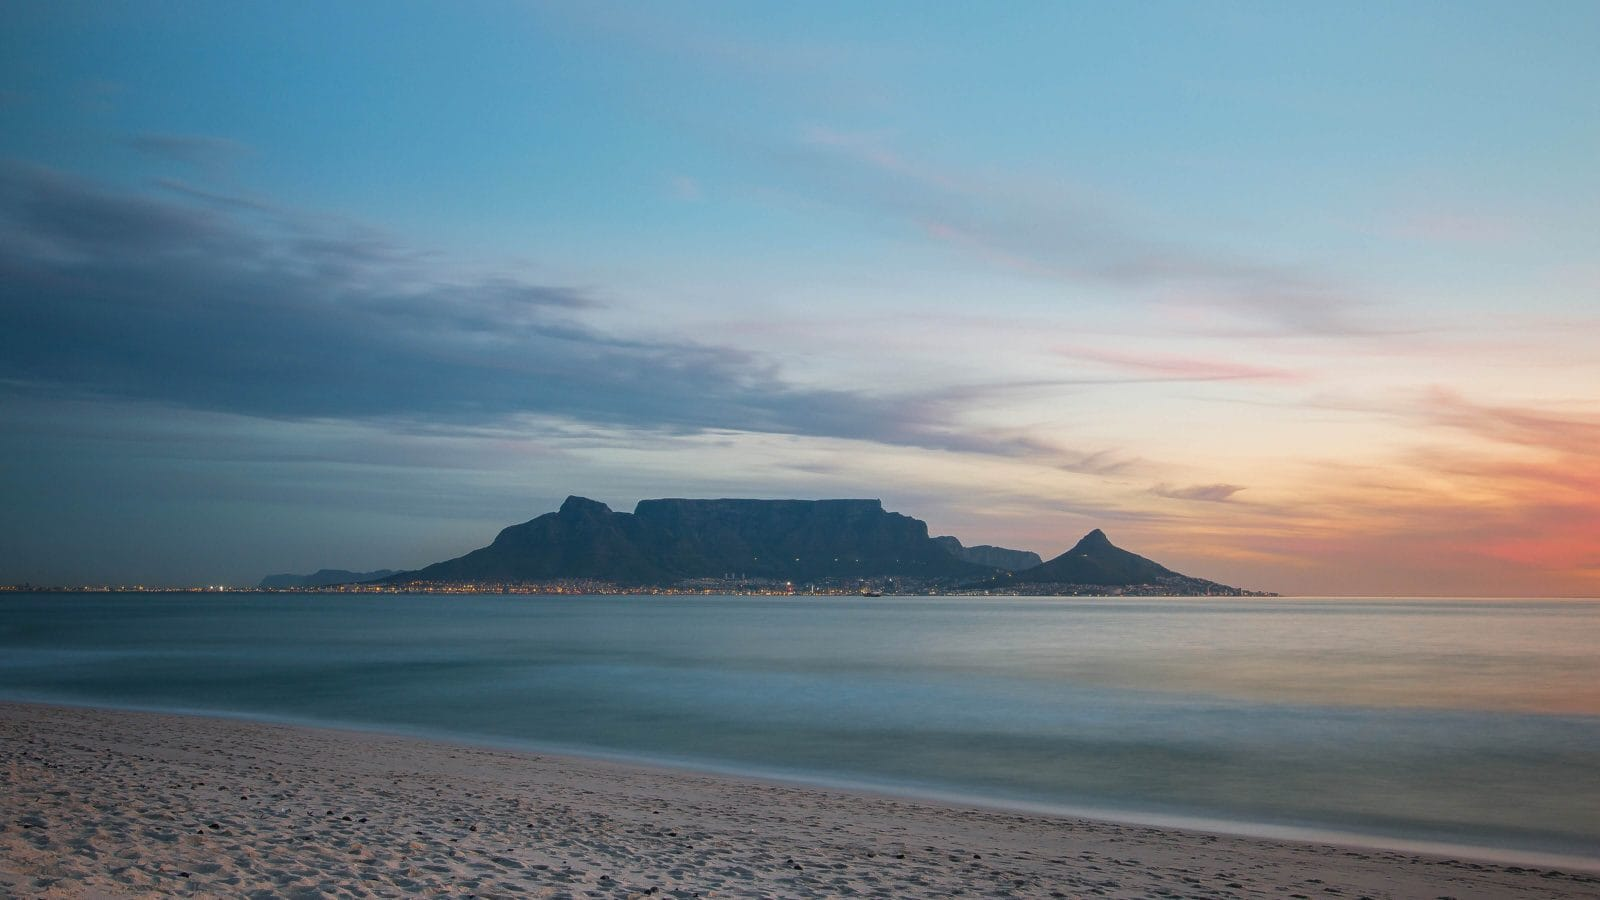 Image of Table Mountain taken from Blouberg Beach